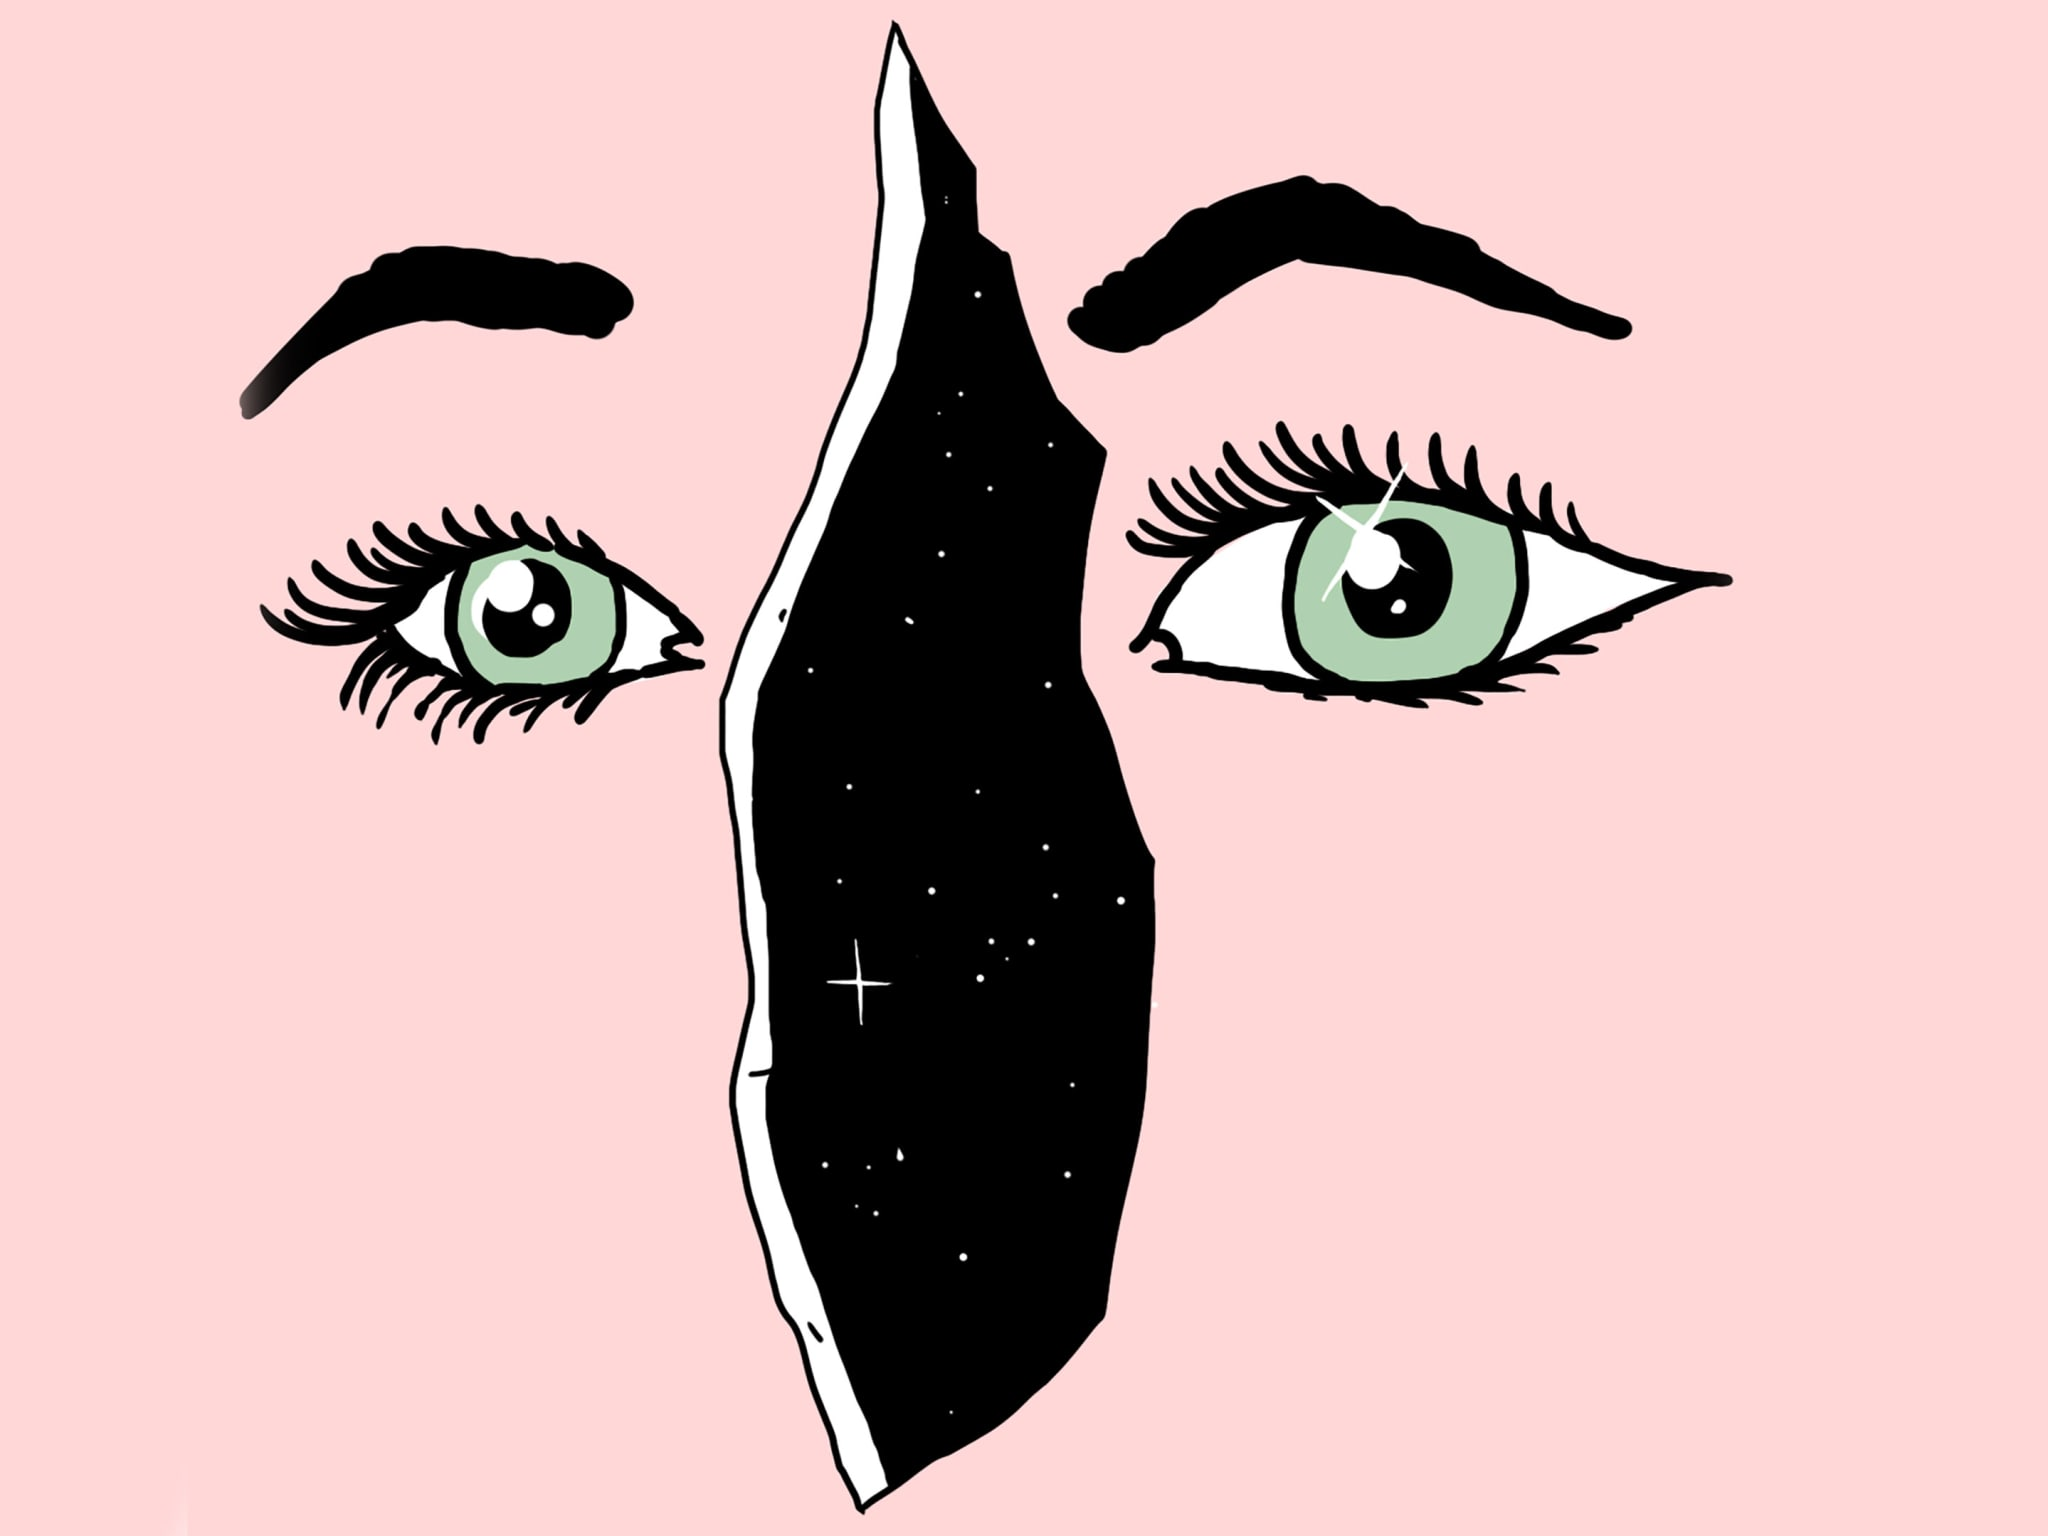 An illustration of a pink face with two eyes and a crack for a nose.